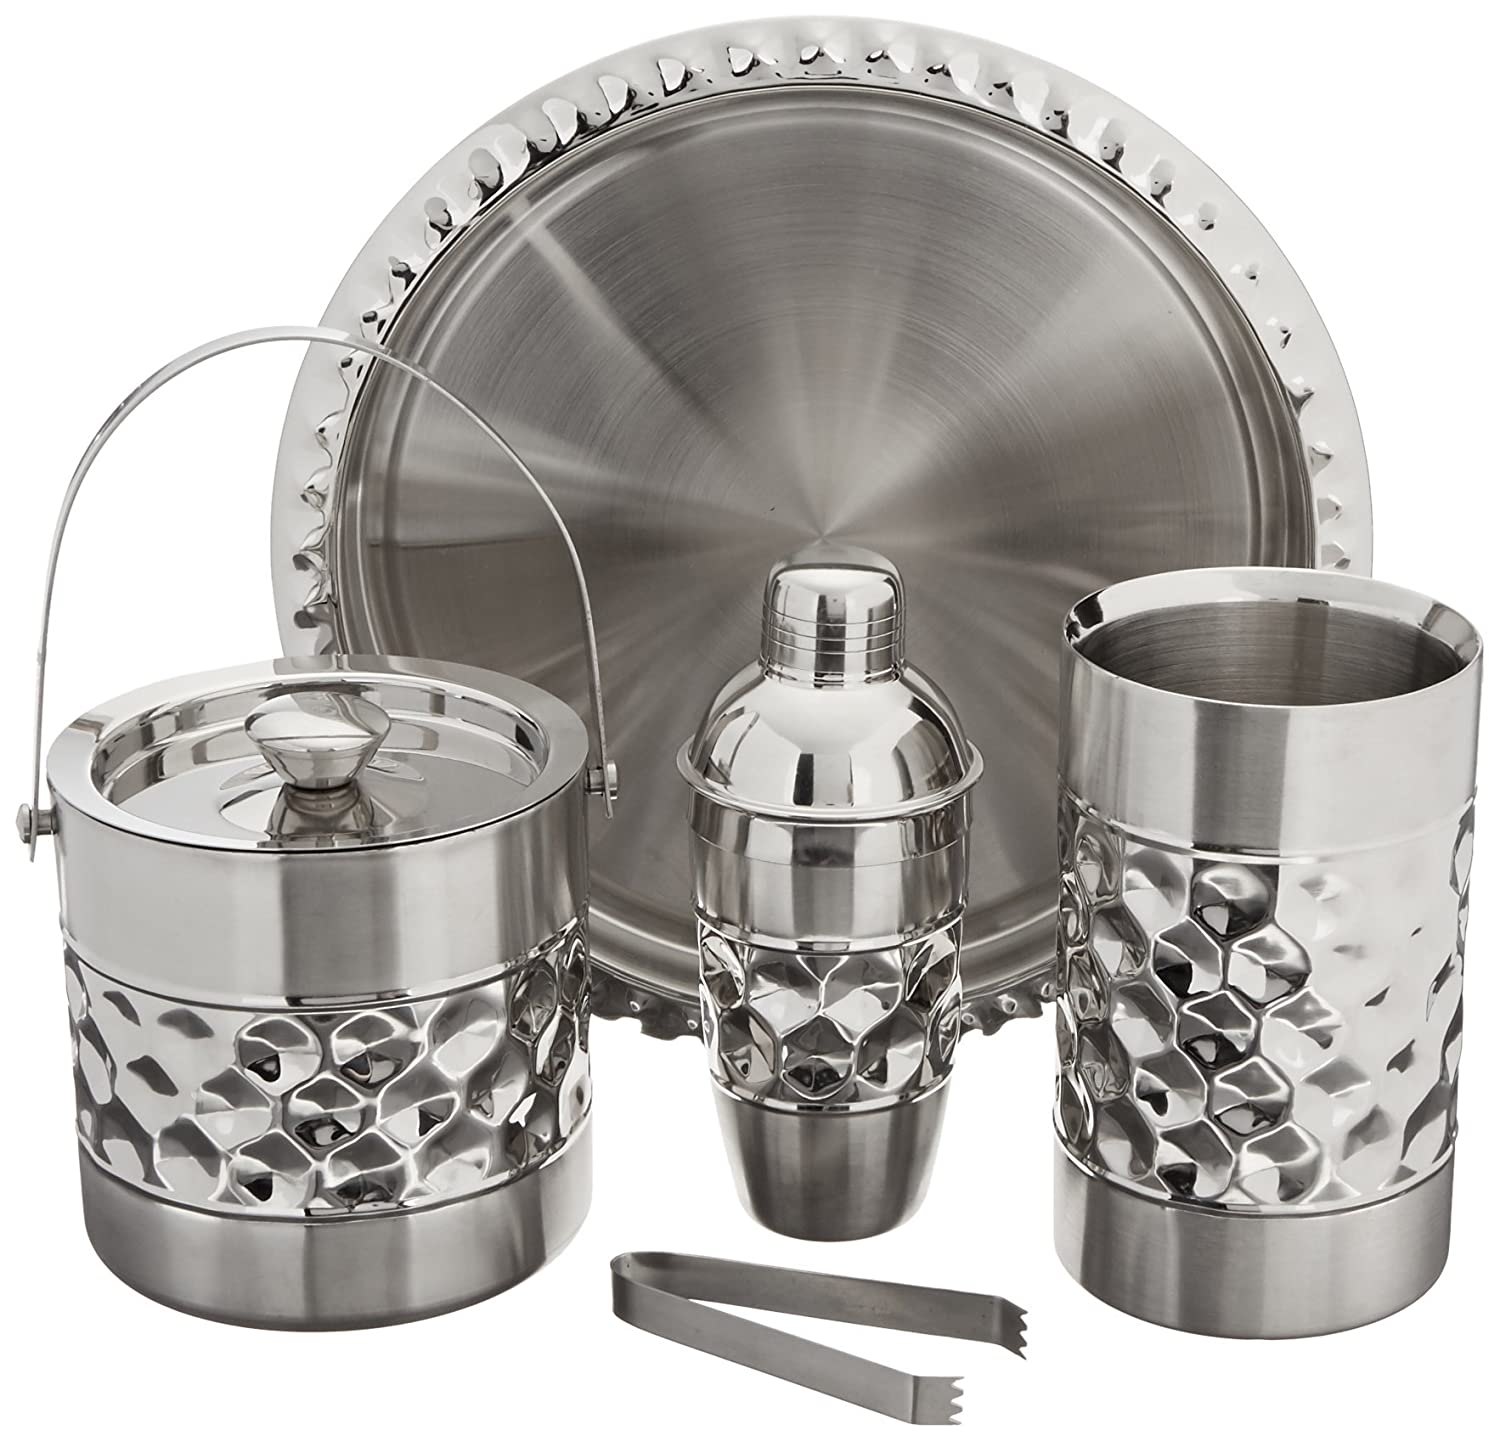 Francois et Mimi Stainless Steel Bar Tools Set, Including Ice Bucket, Wine Chiller, Cocktail Shaker and Serving Tray 6569U03AGO